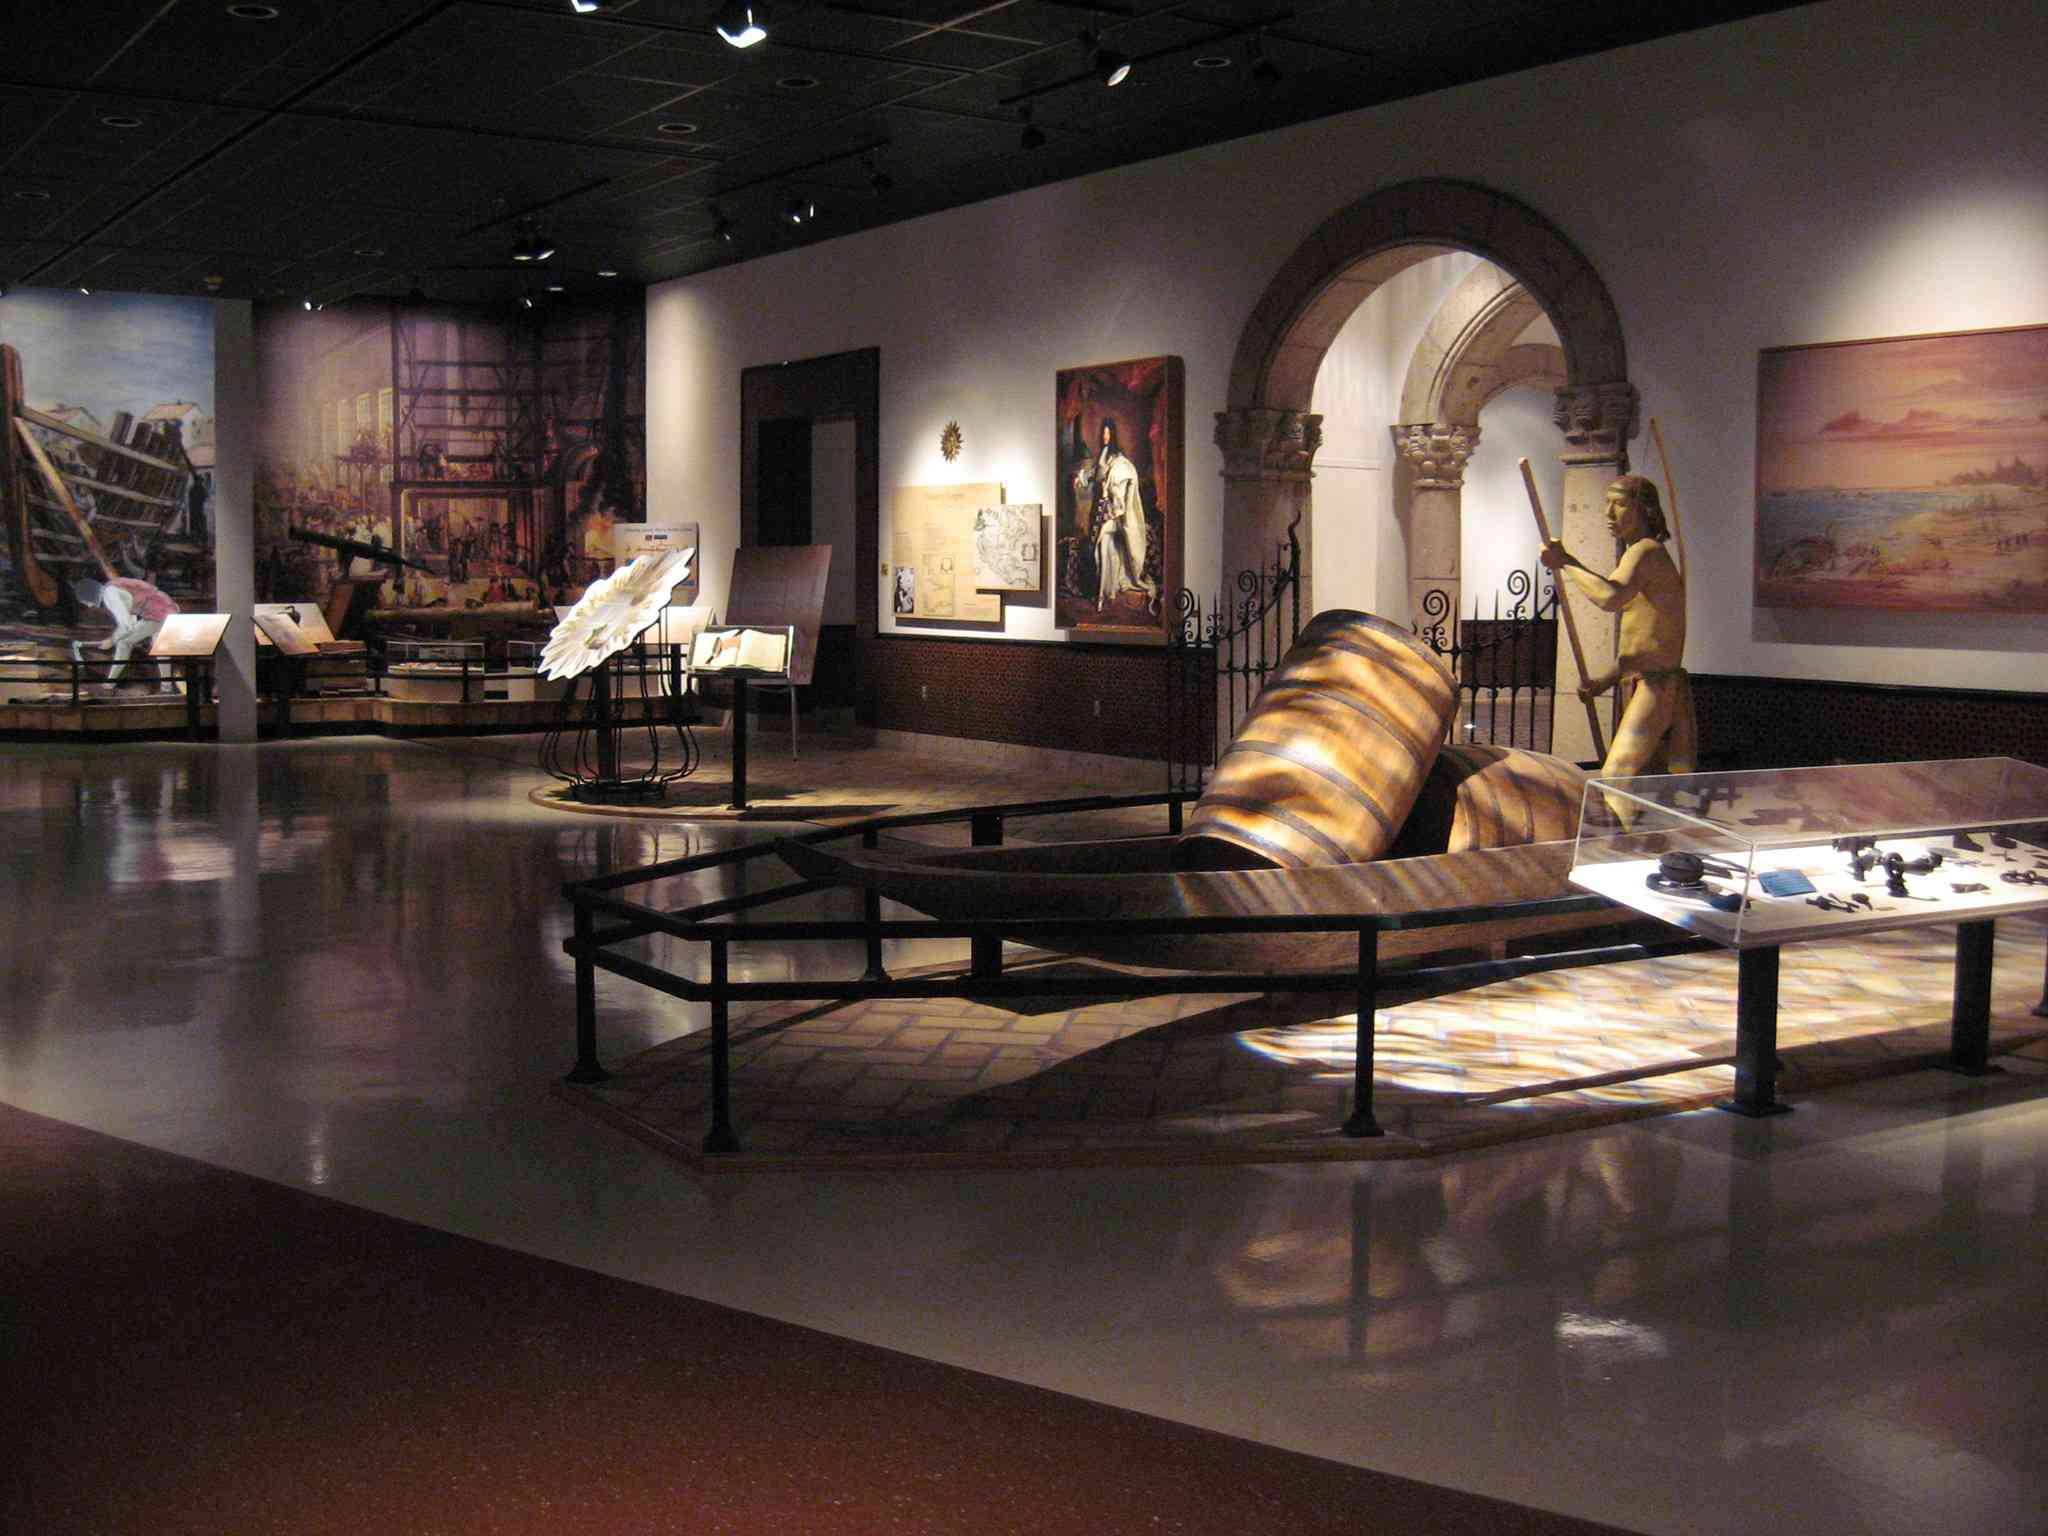 Diorama's and displays in the Corpus Christi Museum of Science and History